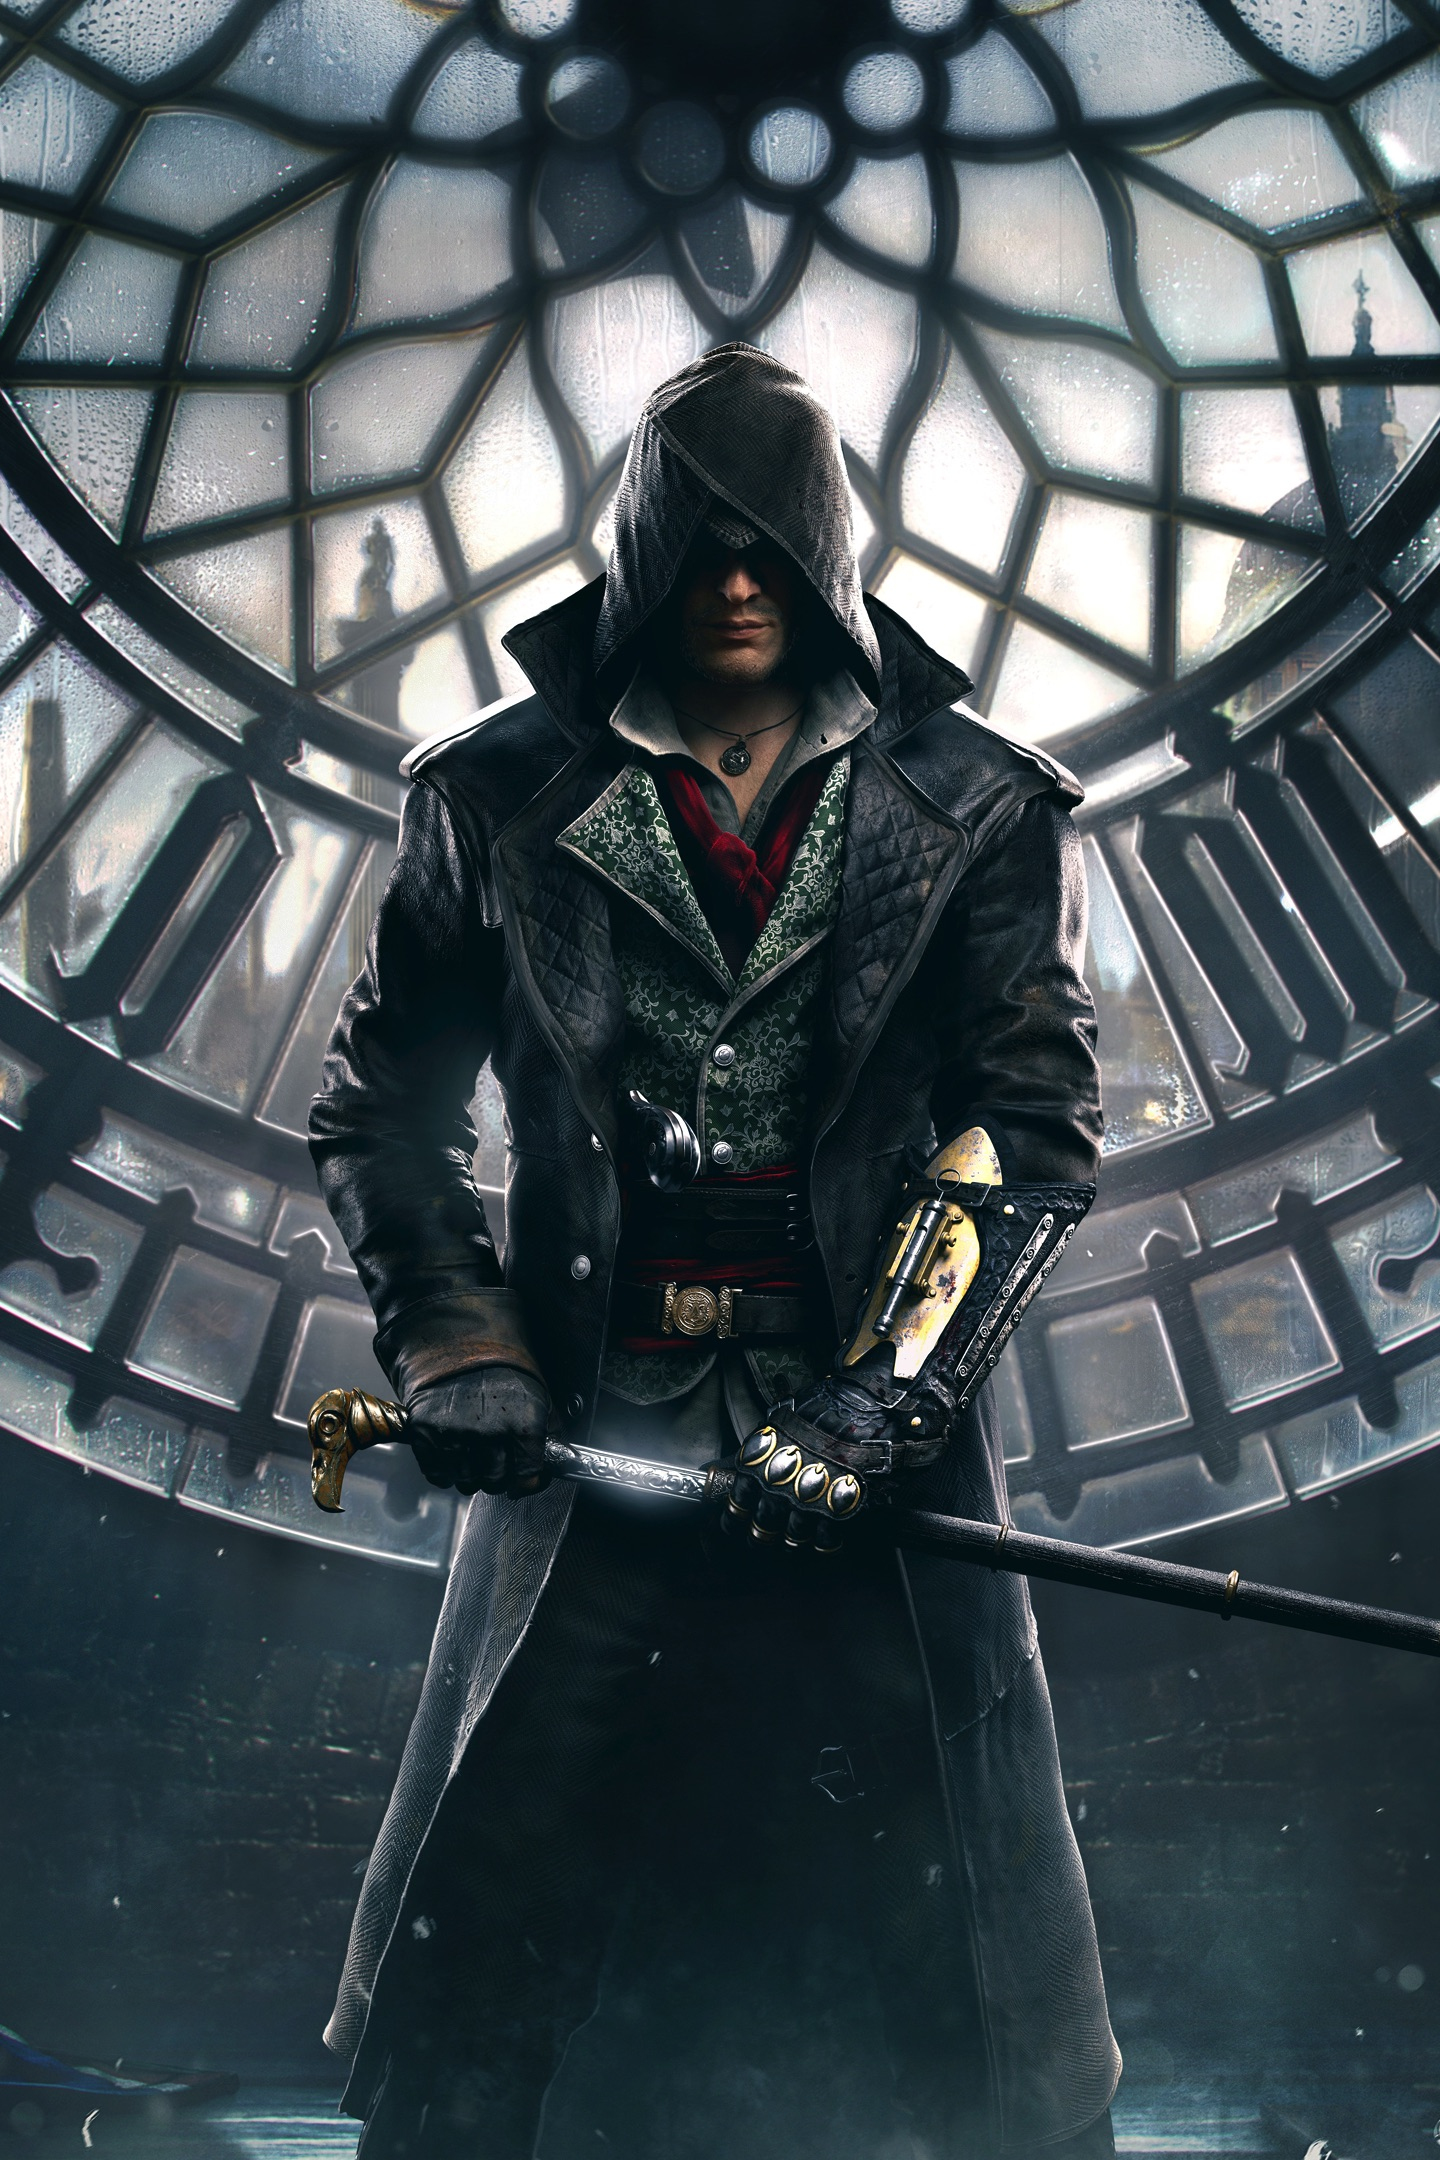 Download 1440x2880 Wallpaper Assassin S Creed Syndicate Video Game